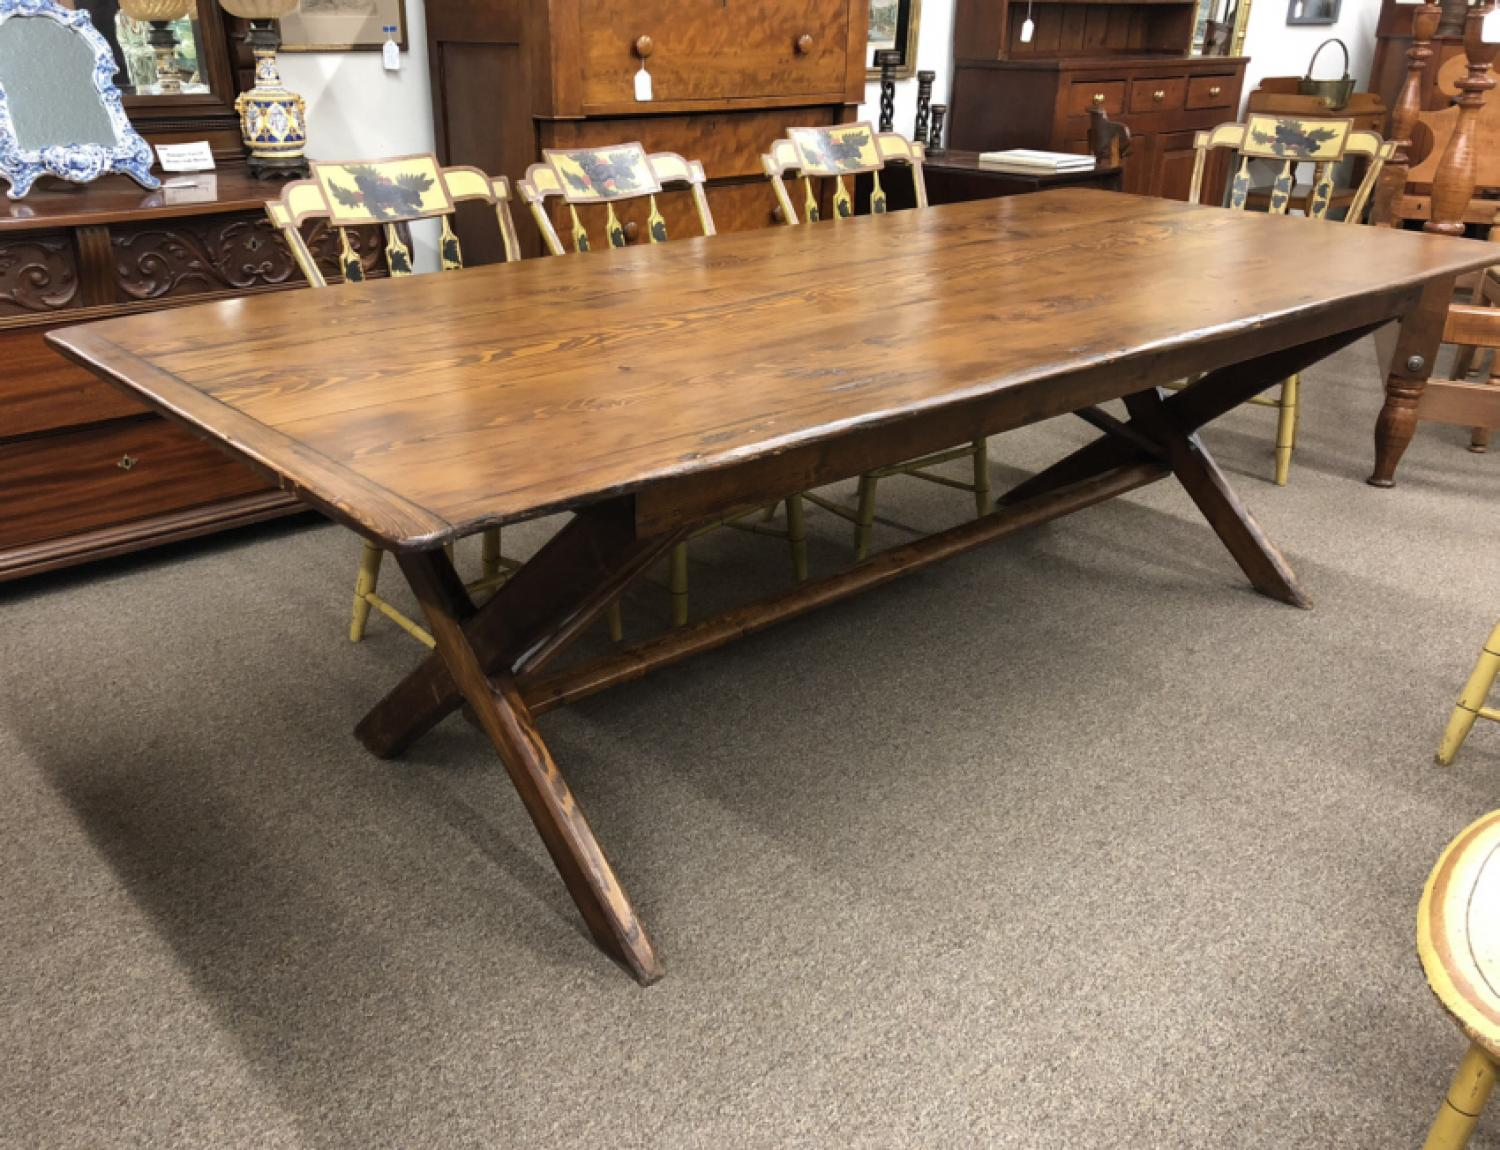 Antique pine sawbuck trestle table